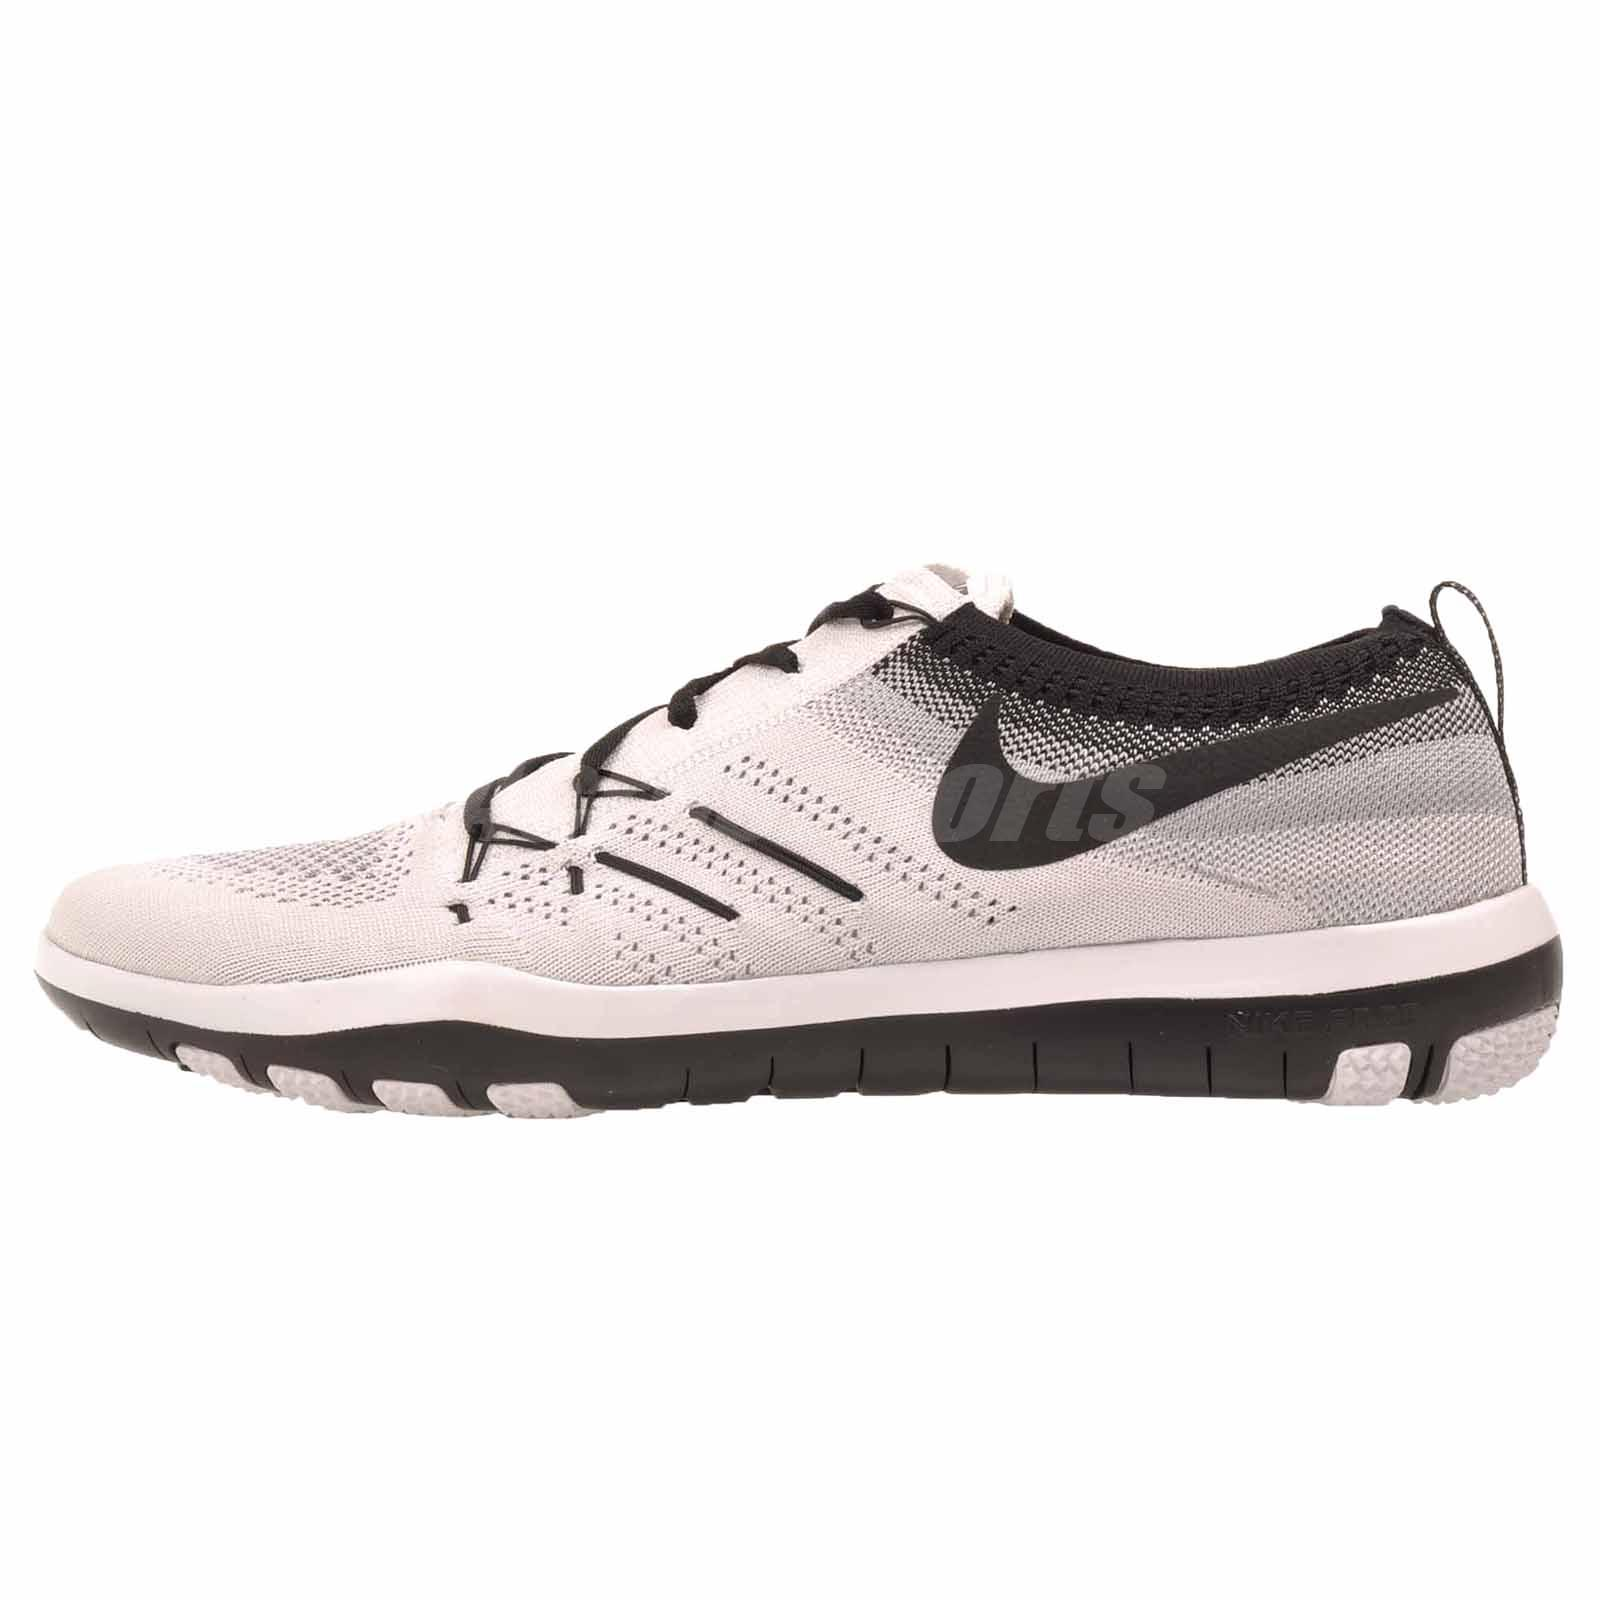 sale retailer 99df5 a77c3 ... Nike Wmns Free TR Focus Flyknit Cross Training Womens Shoes 844817-102  ...